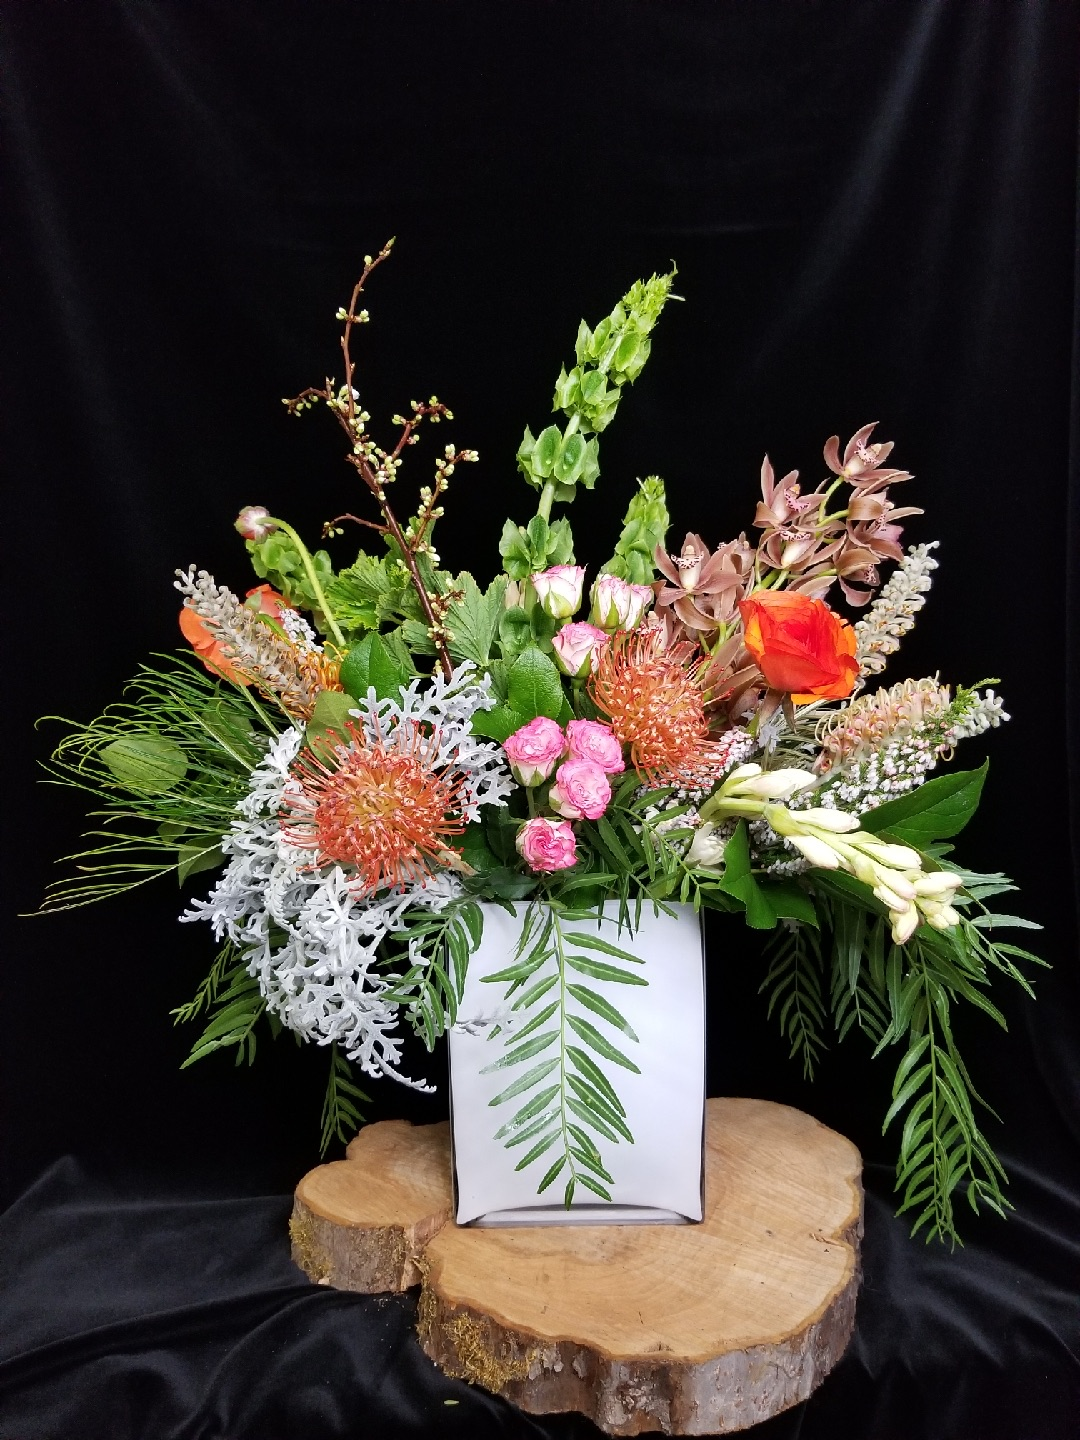 28. Modern showpiece with pincushion and pepperberry